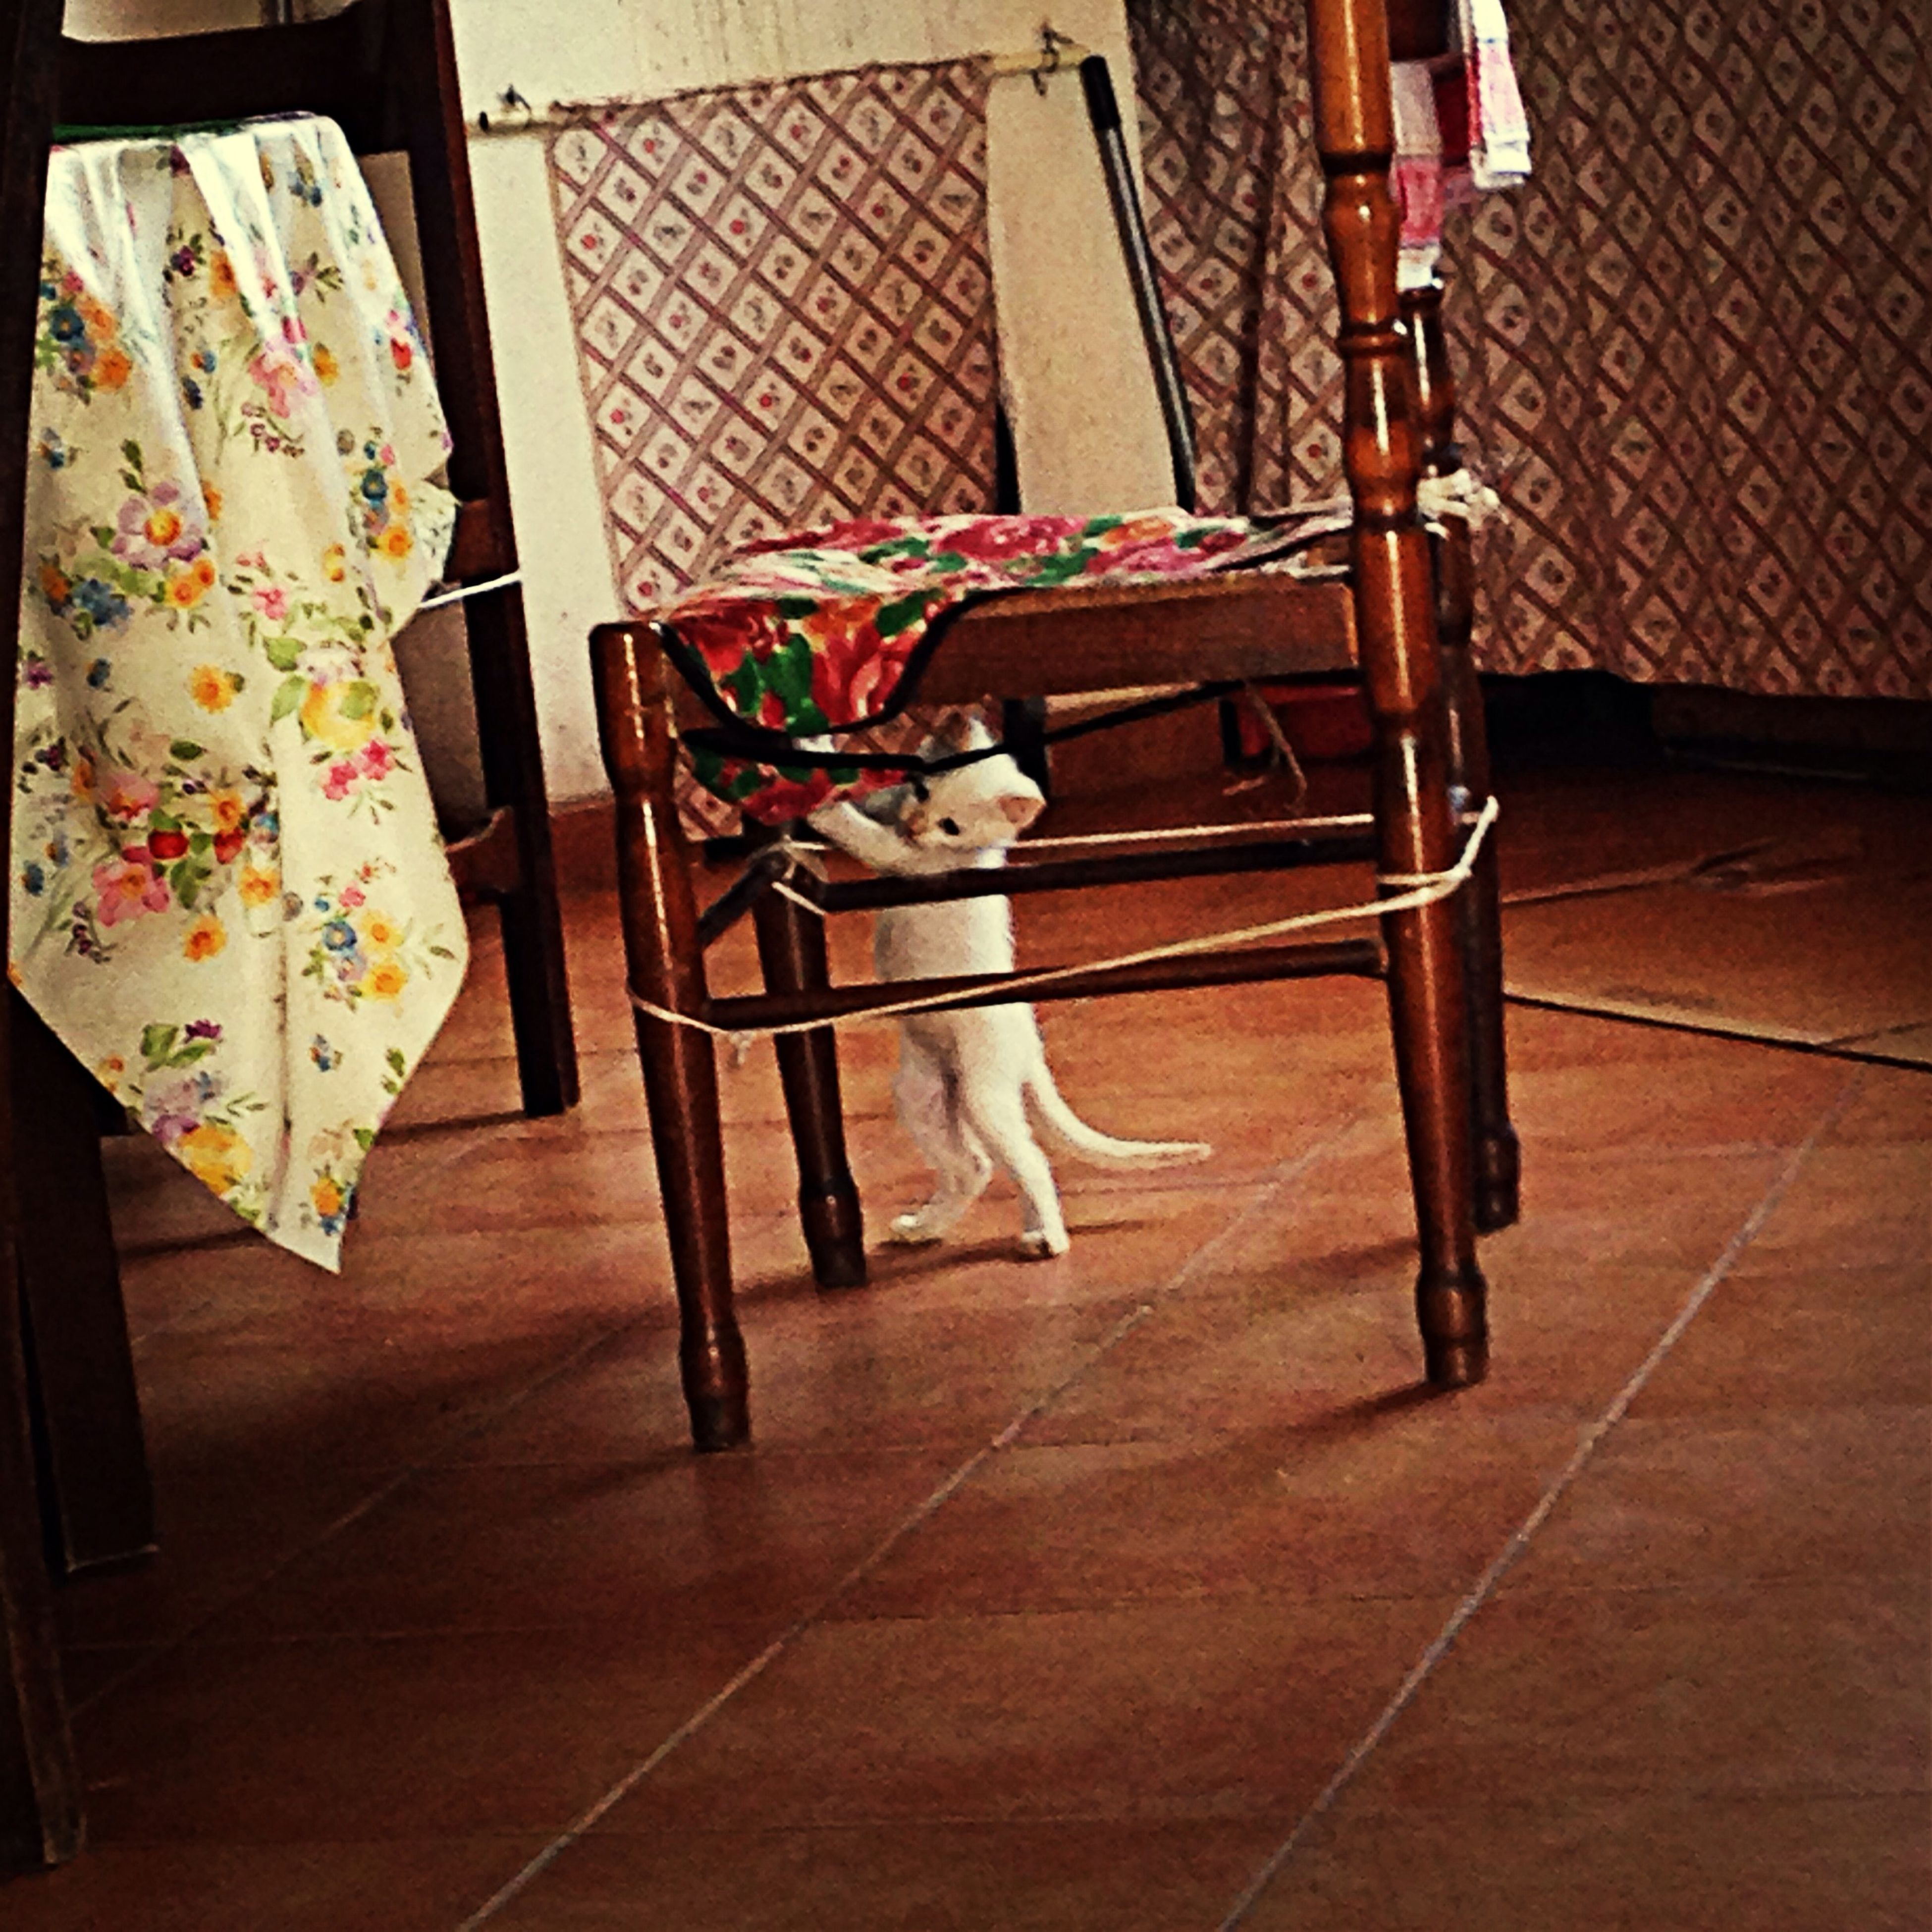 indoors, chair, flooring, tiled floor, table, absence, auto post production filter, home interior, childhood, day, furniture, clothing, no people, hardwood floor, wood - material, empty, high angle view, hanging, sitting, seat